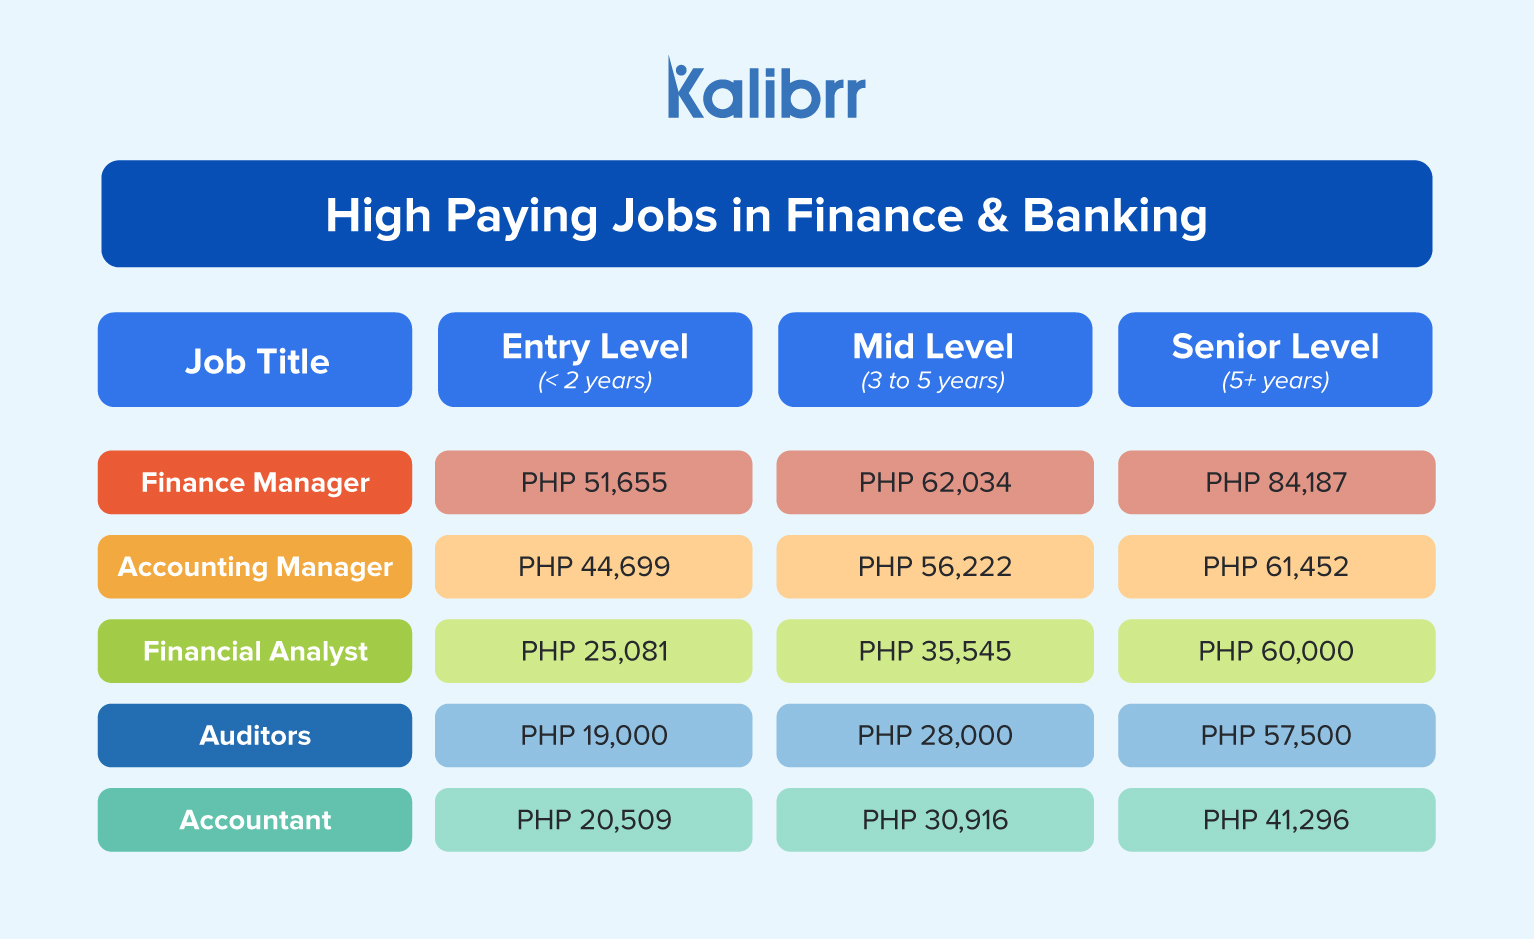 Five High Paying Jobs in Finance and Banking